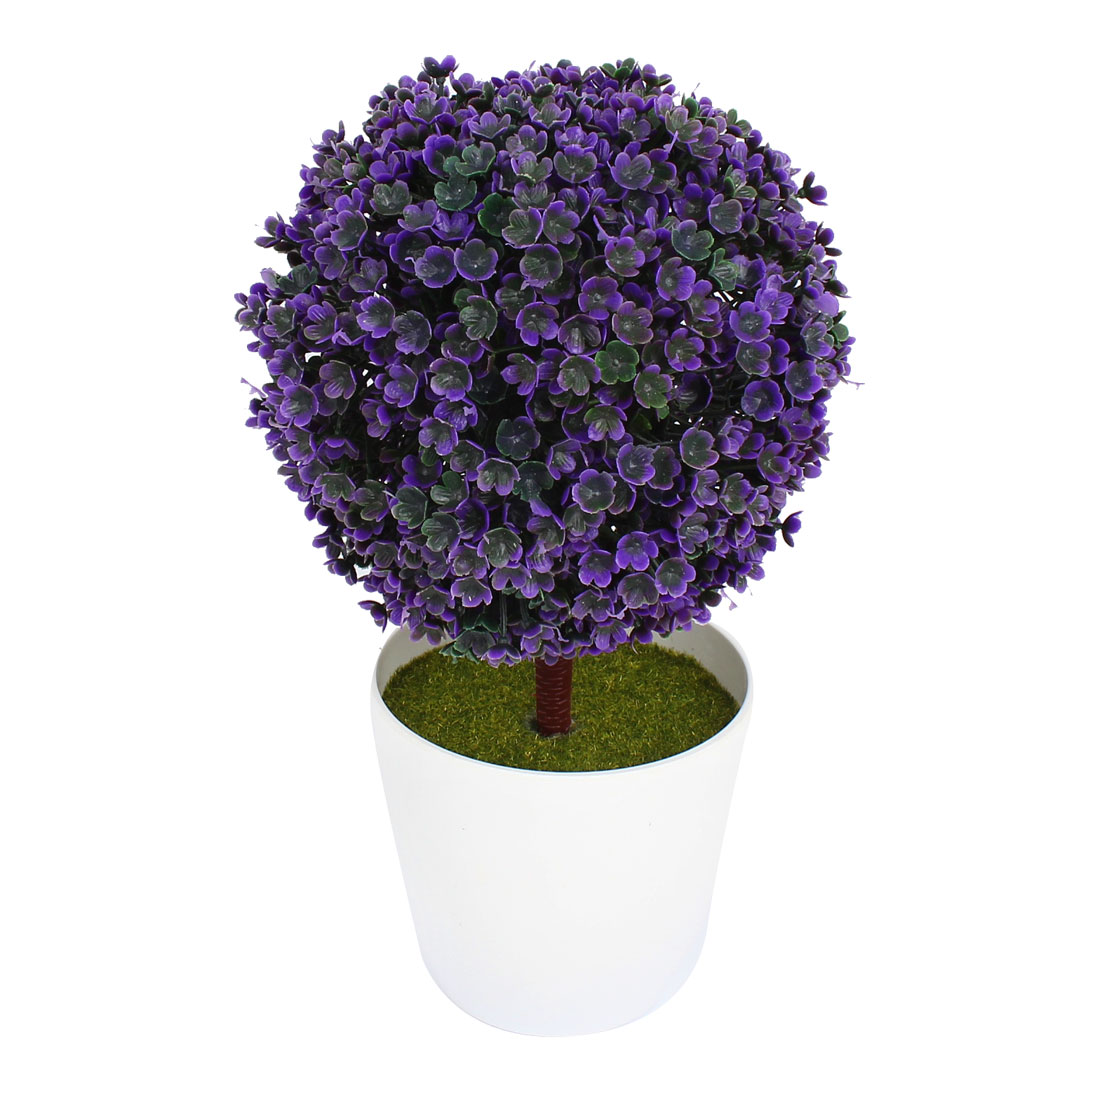 "9.8"" Length Artificial Plant Bonsai Home Ornament Floral Tree Plant Dark Purple"